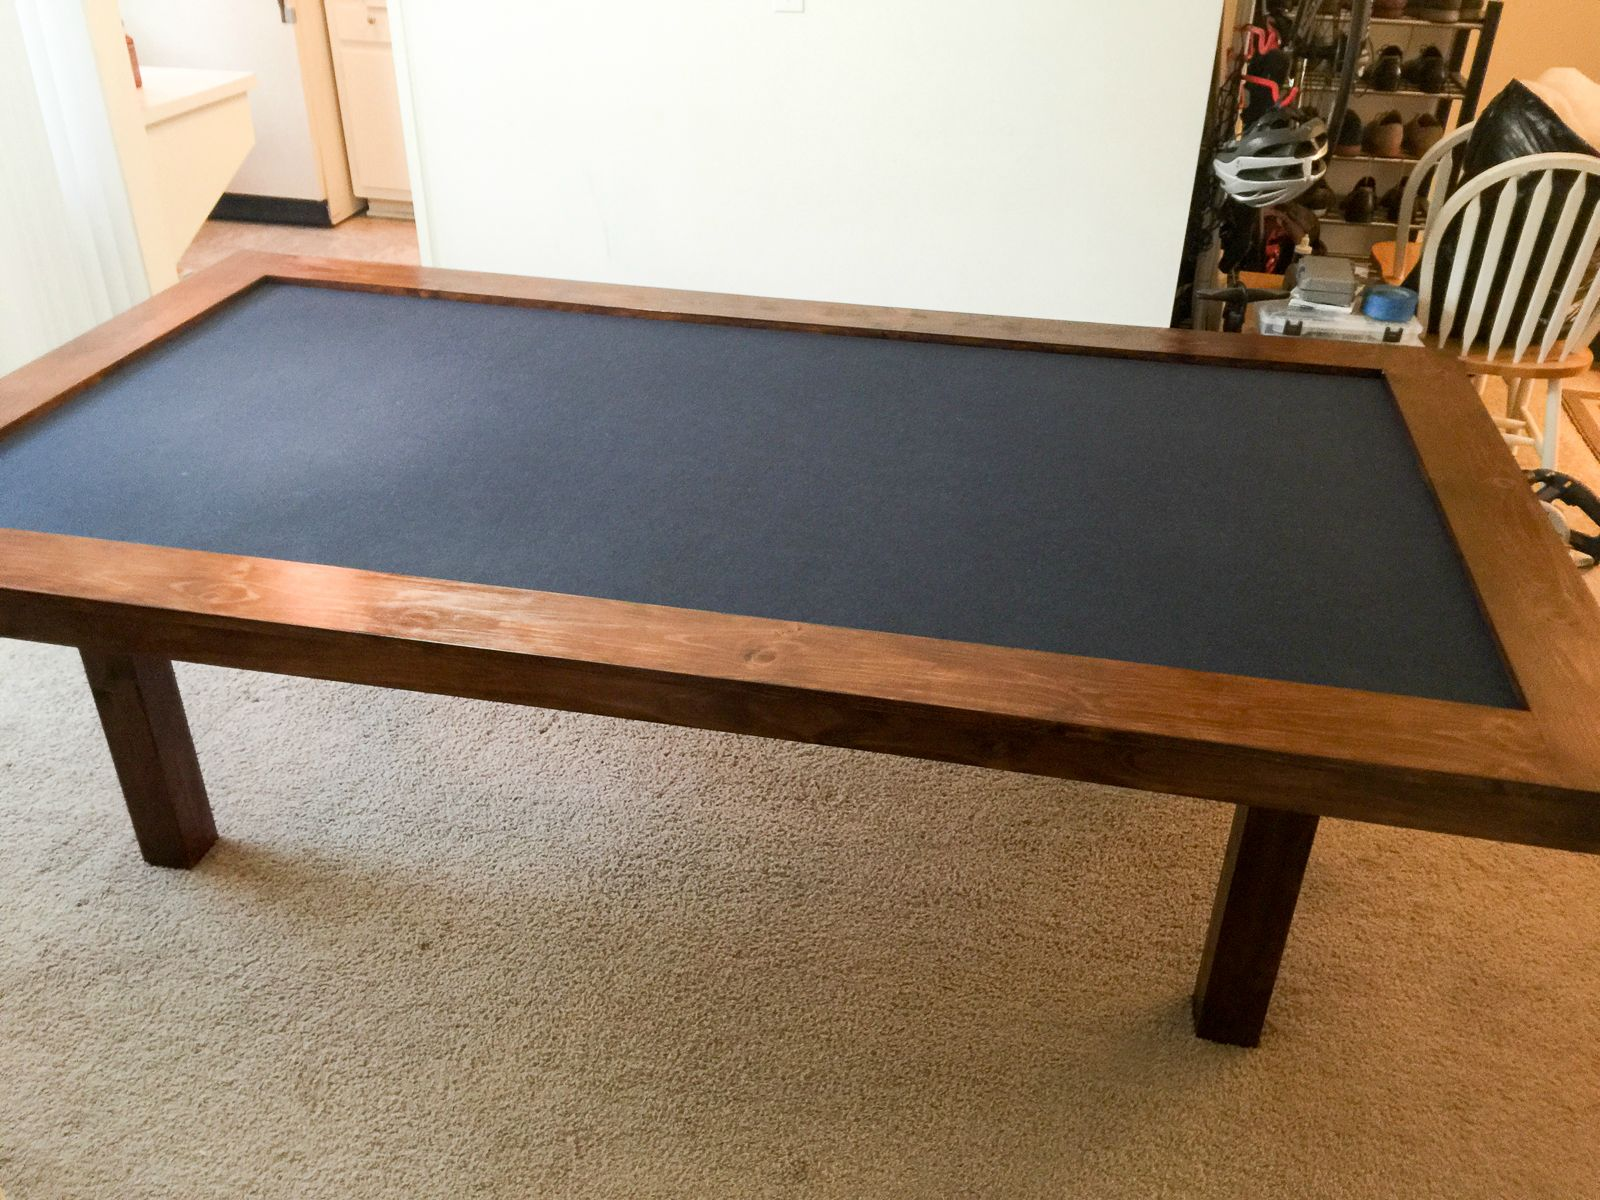 Sub Dining Room Gaming Table Board Games Enhanced - Cheap board game table